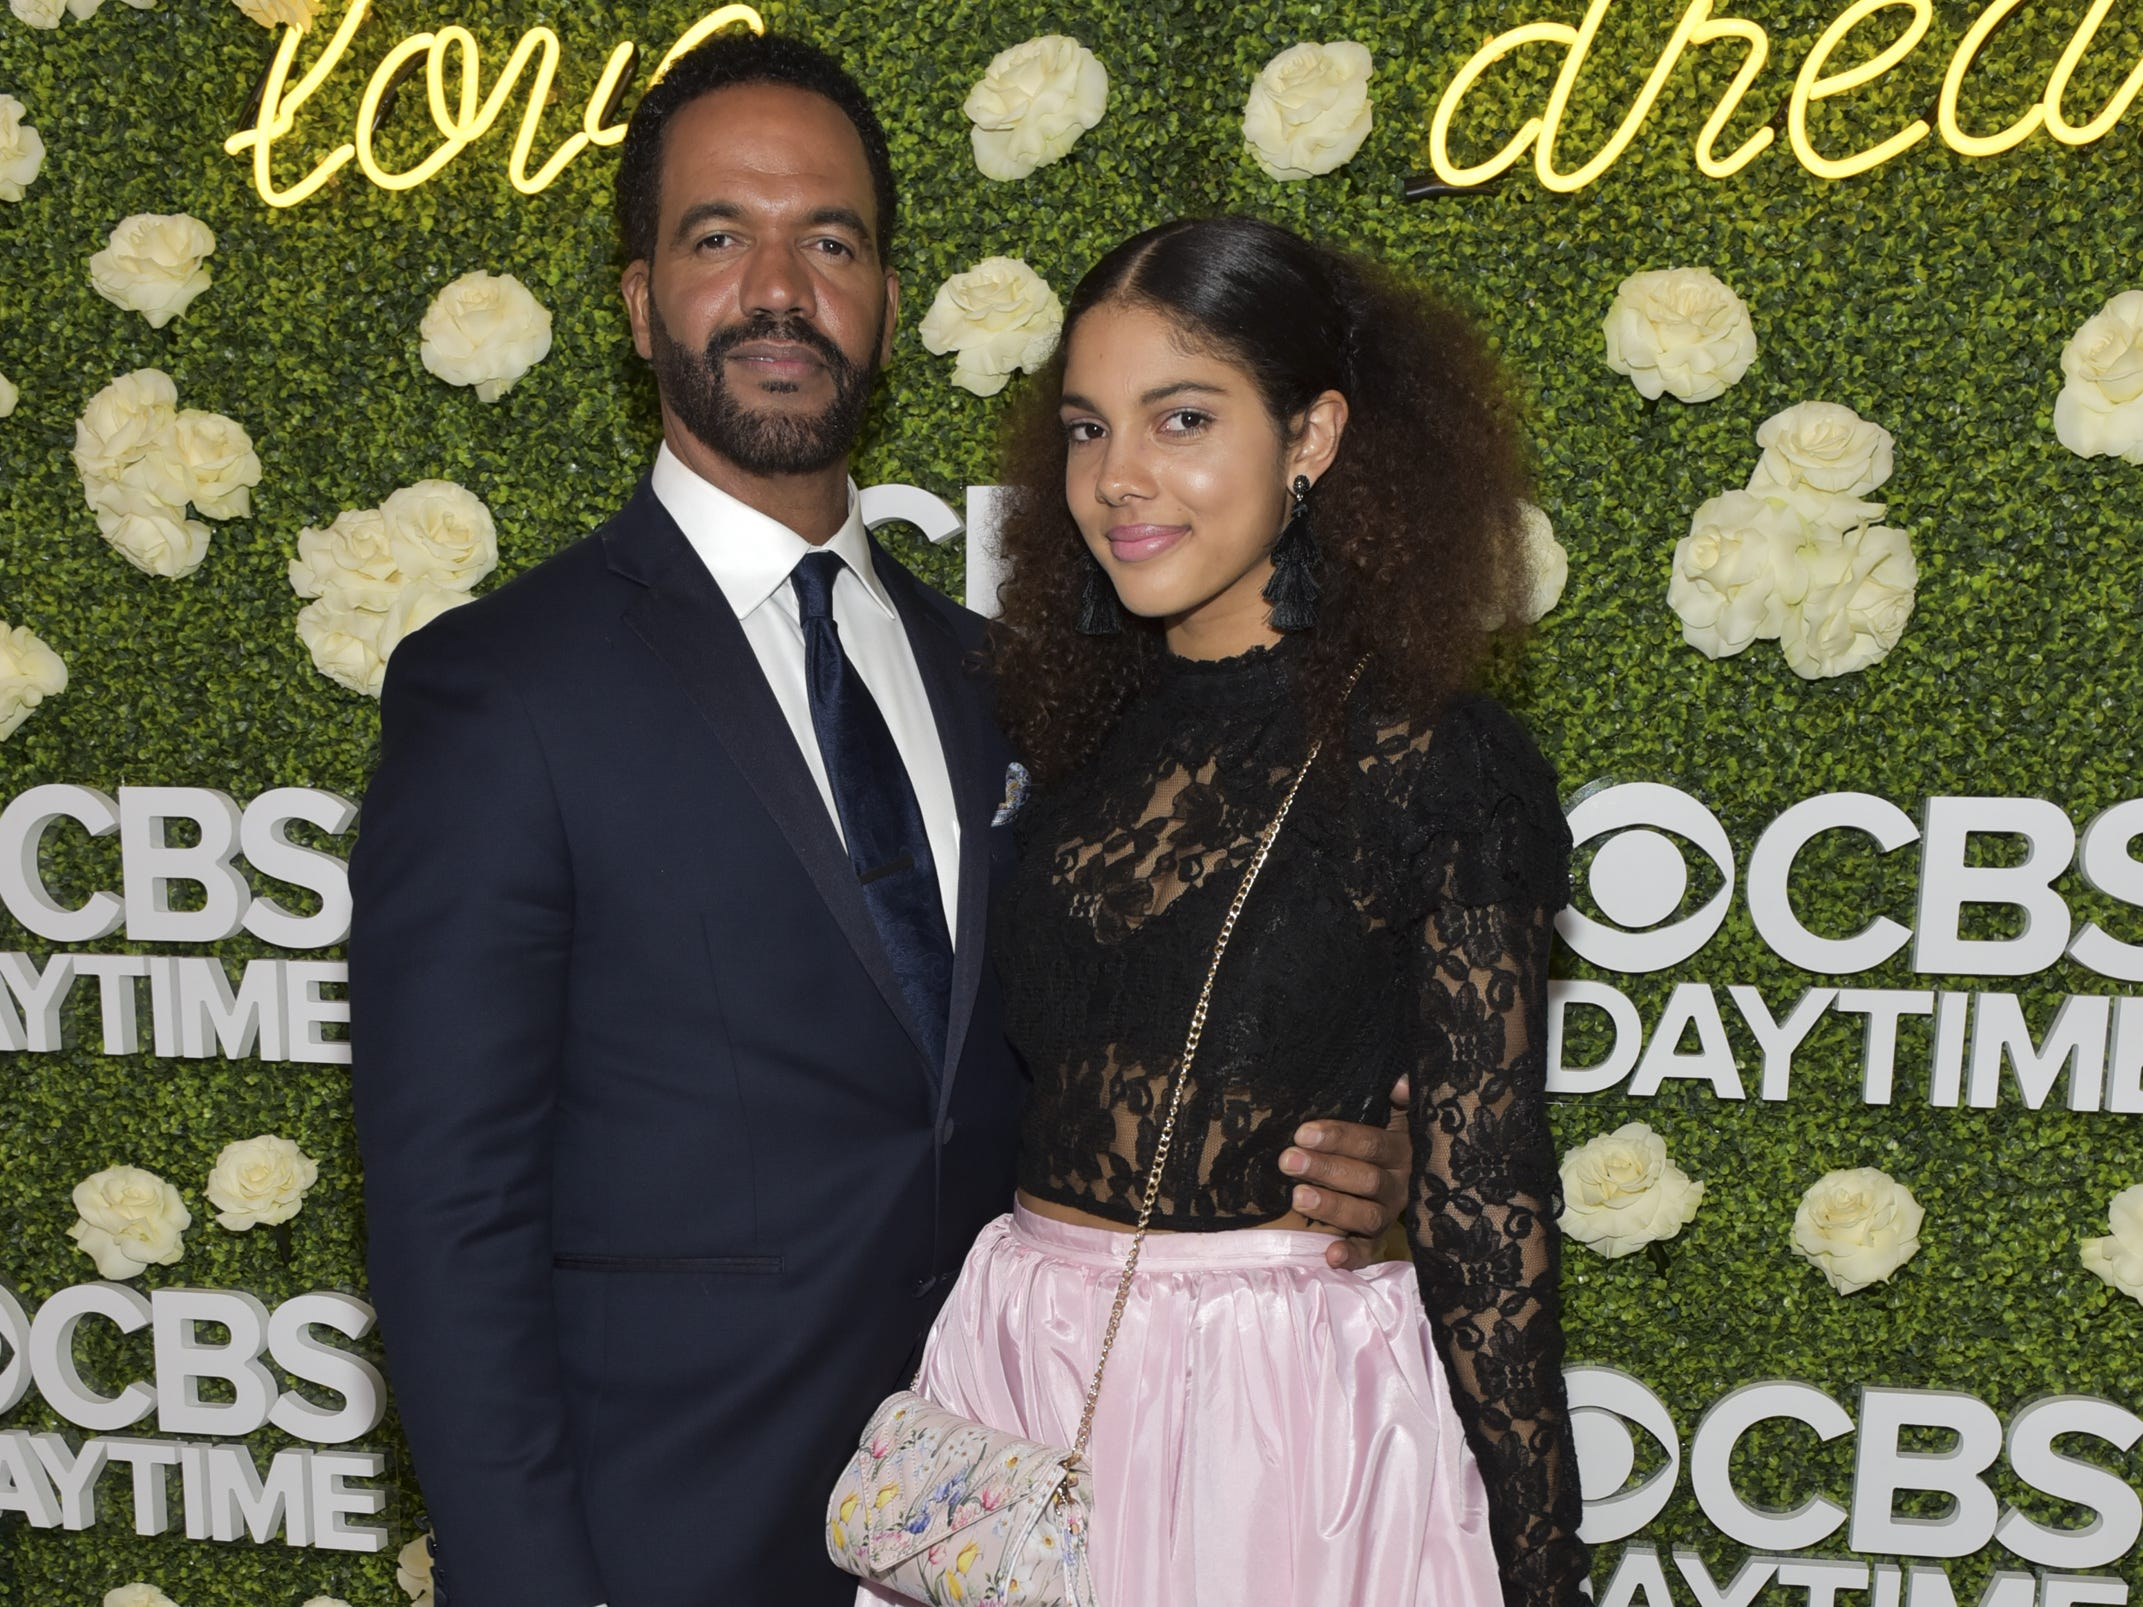 Actor Kristoff St. John and his daughter Paris St. John attend the CBS Daytime Emmy After Party,  April 29, 2018 in Pasadena, Calif.